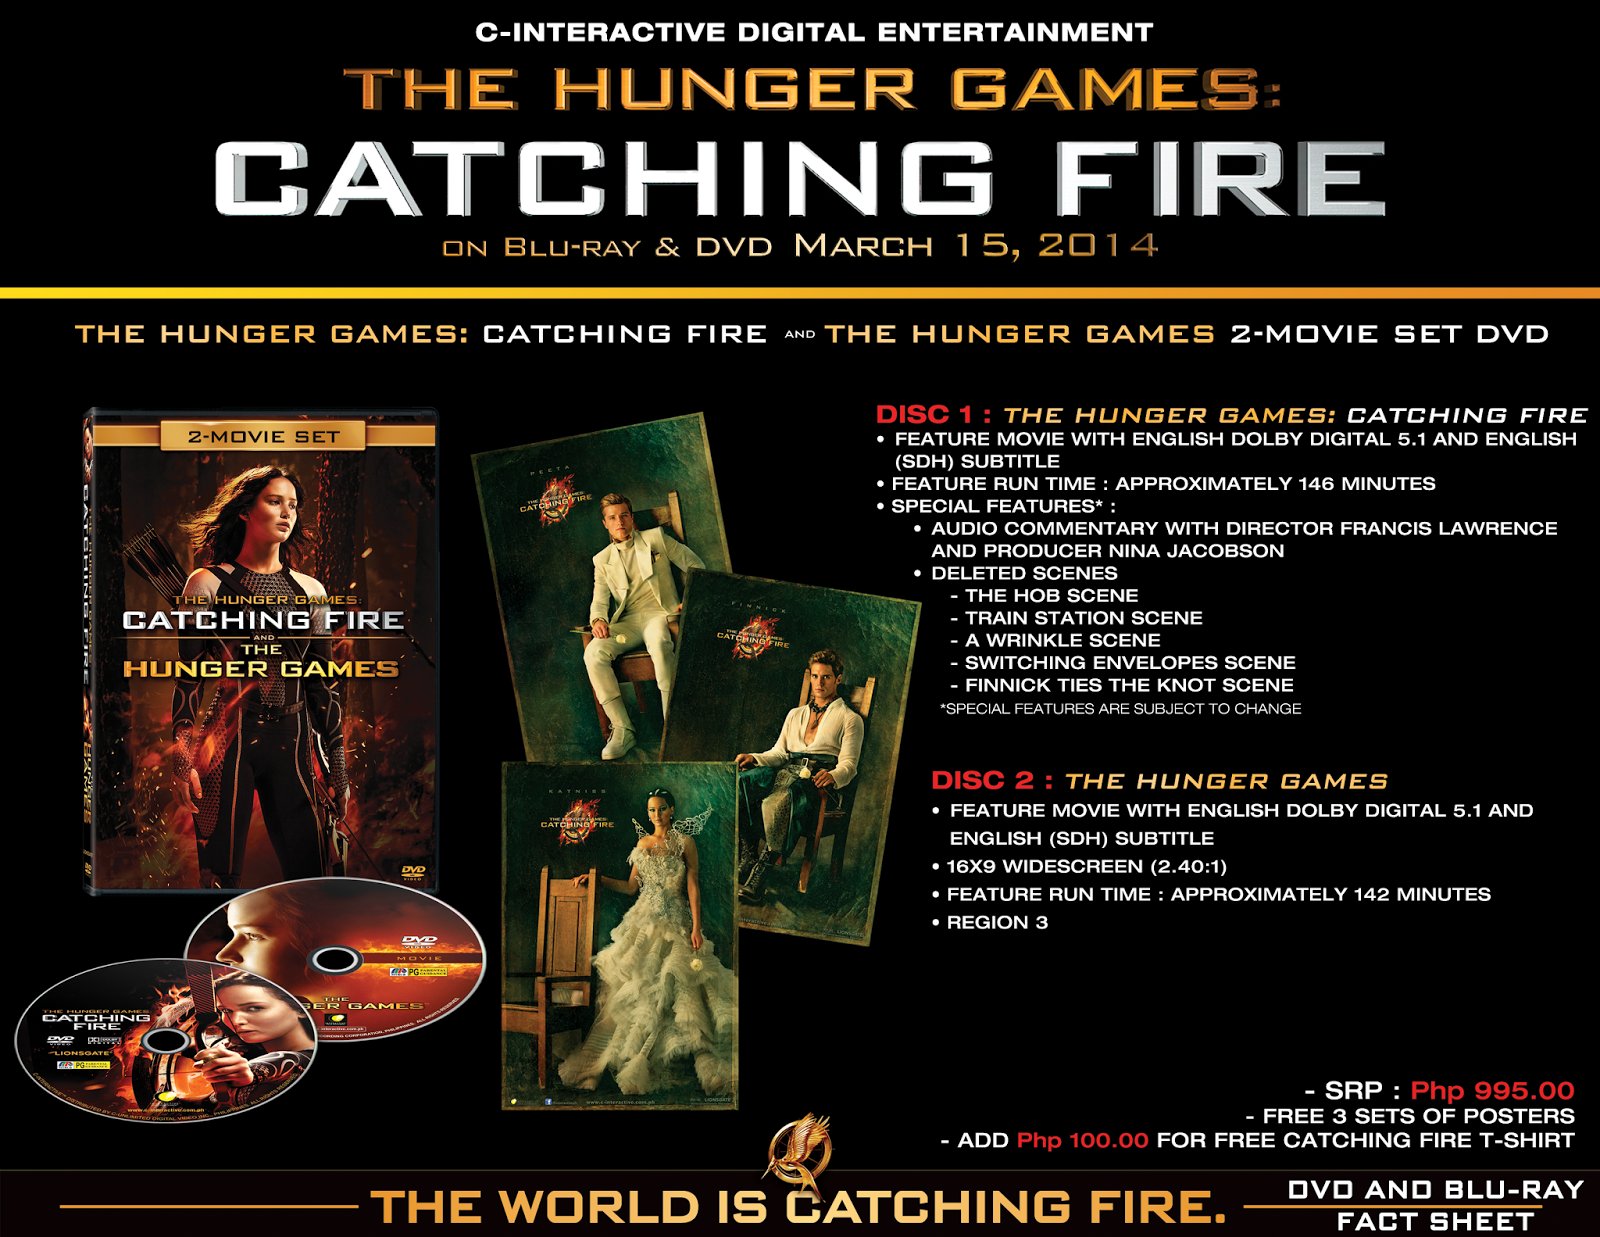 catching fire full movie hd online free